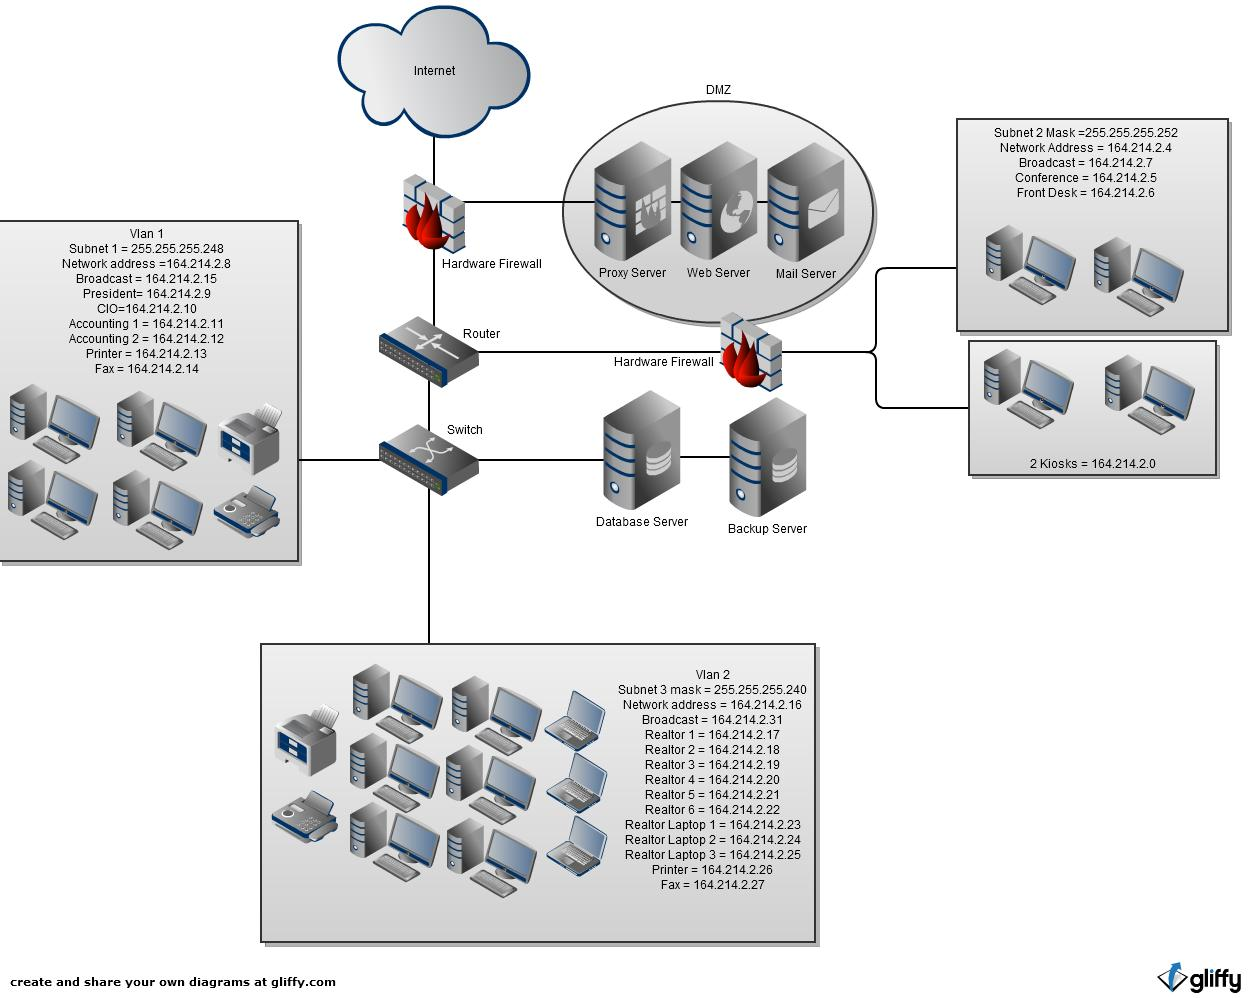 meresgi tech more what would from secure server project vlan just hardware network using that address then their another firewall them system received wouldnt likely depth defense well create wanted with multiple pieces real world obviously compromised case application there operating speedsize overlying doesnt require recommend database backup webemailproxy probably understand through